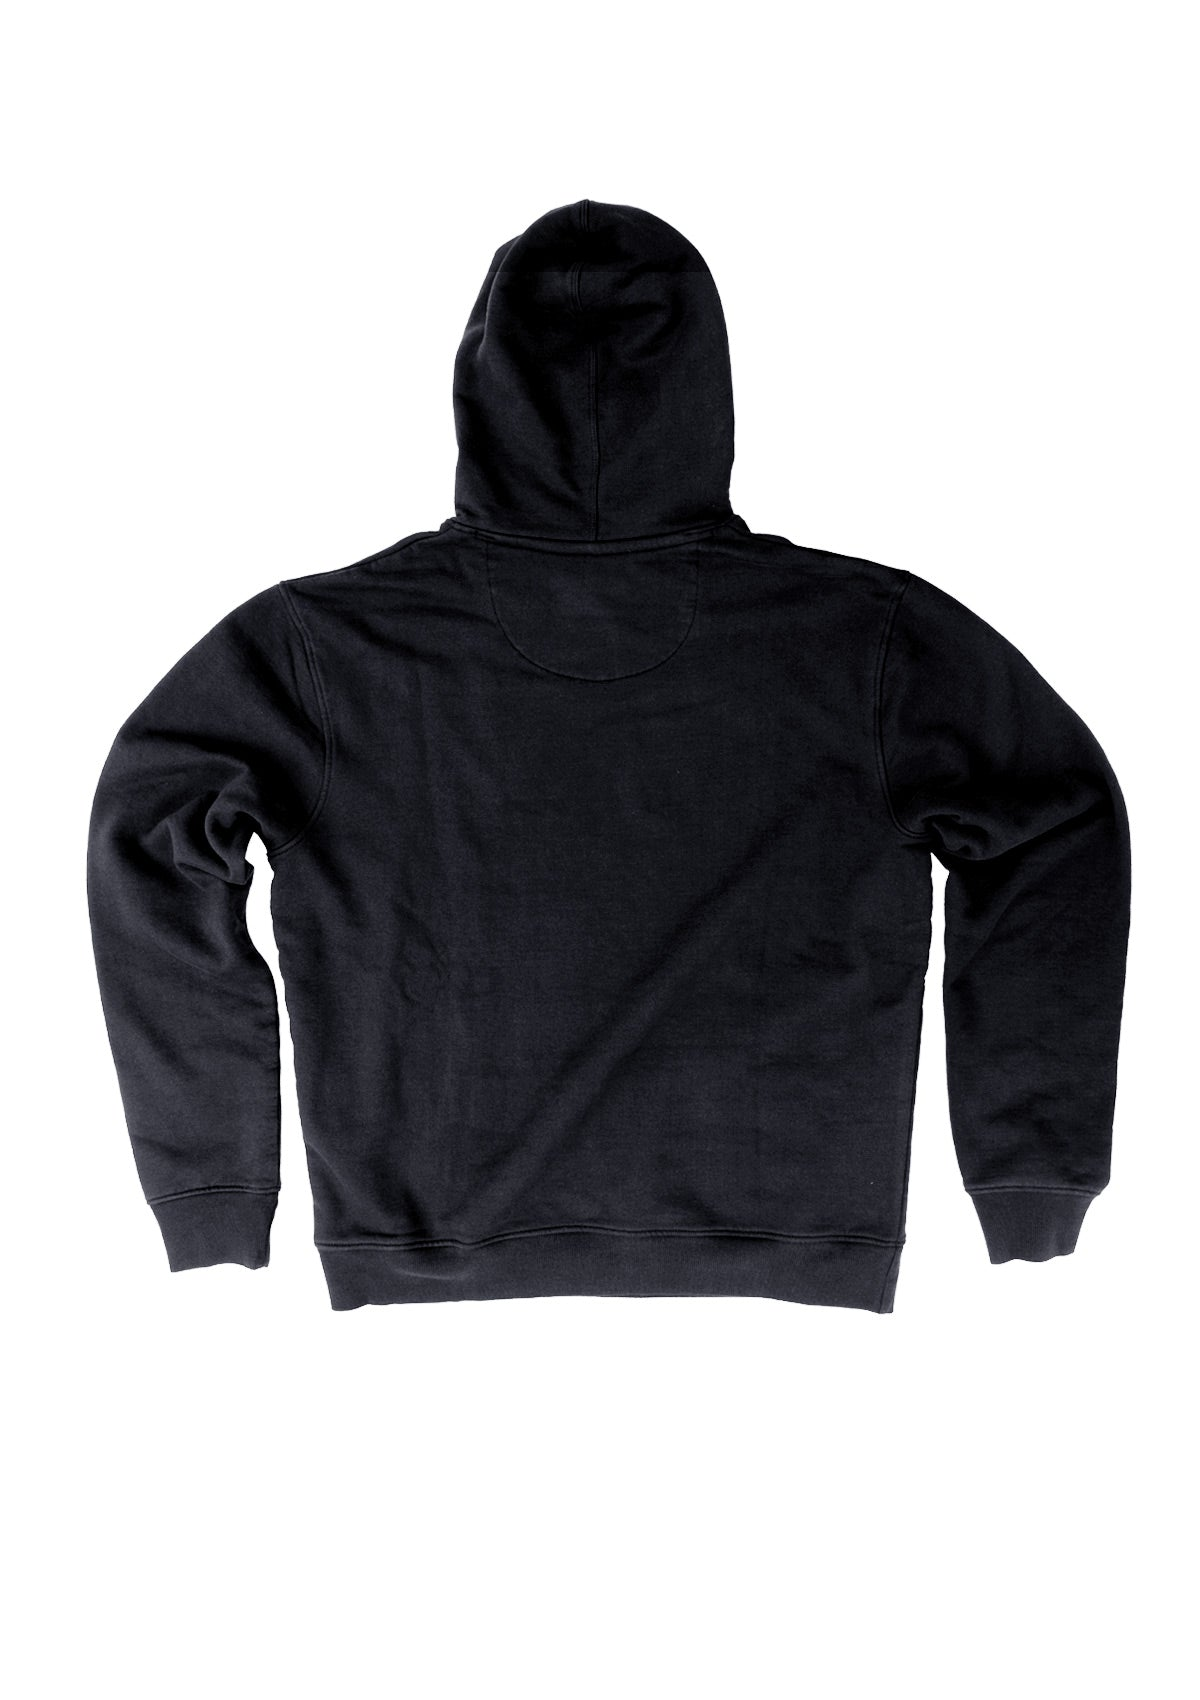 needessentials organic cotton hoodie jumper plain black